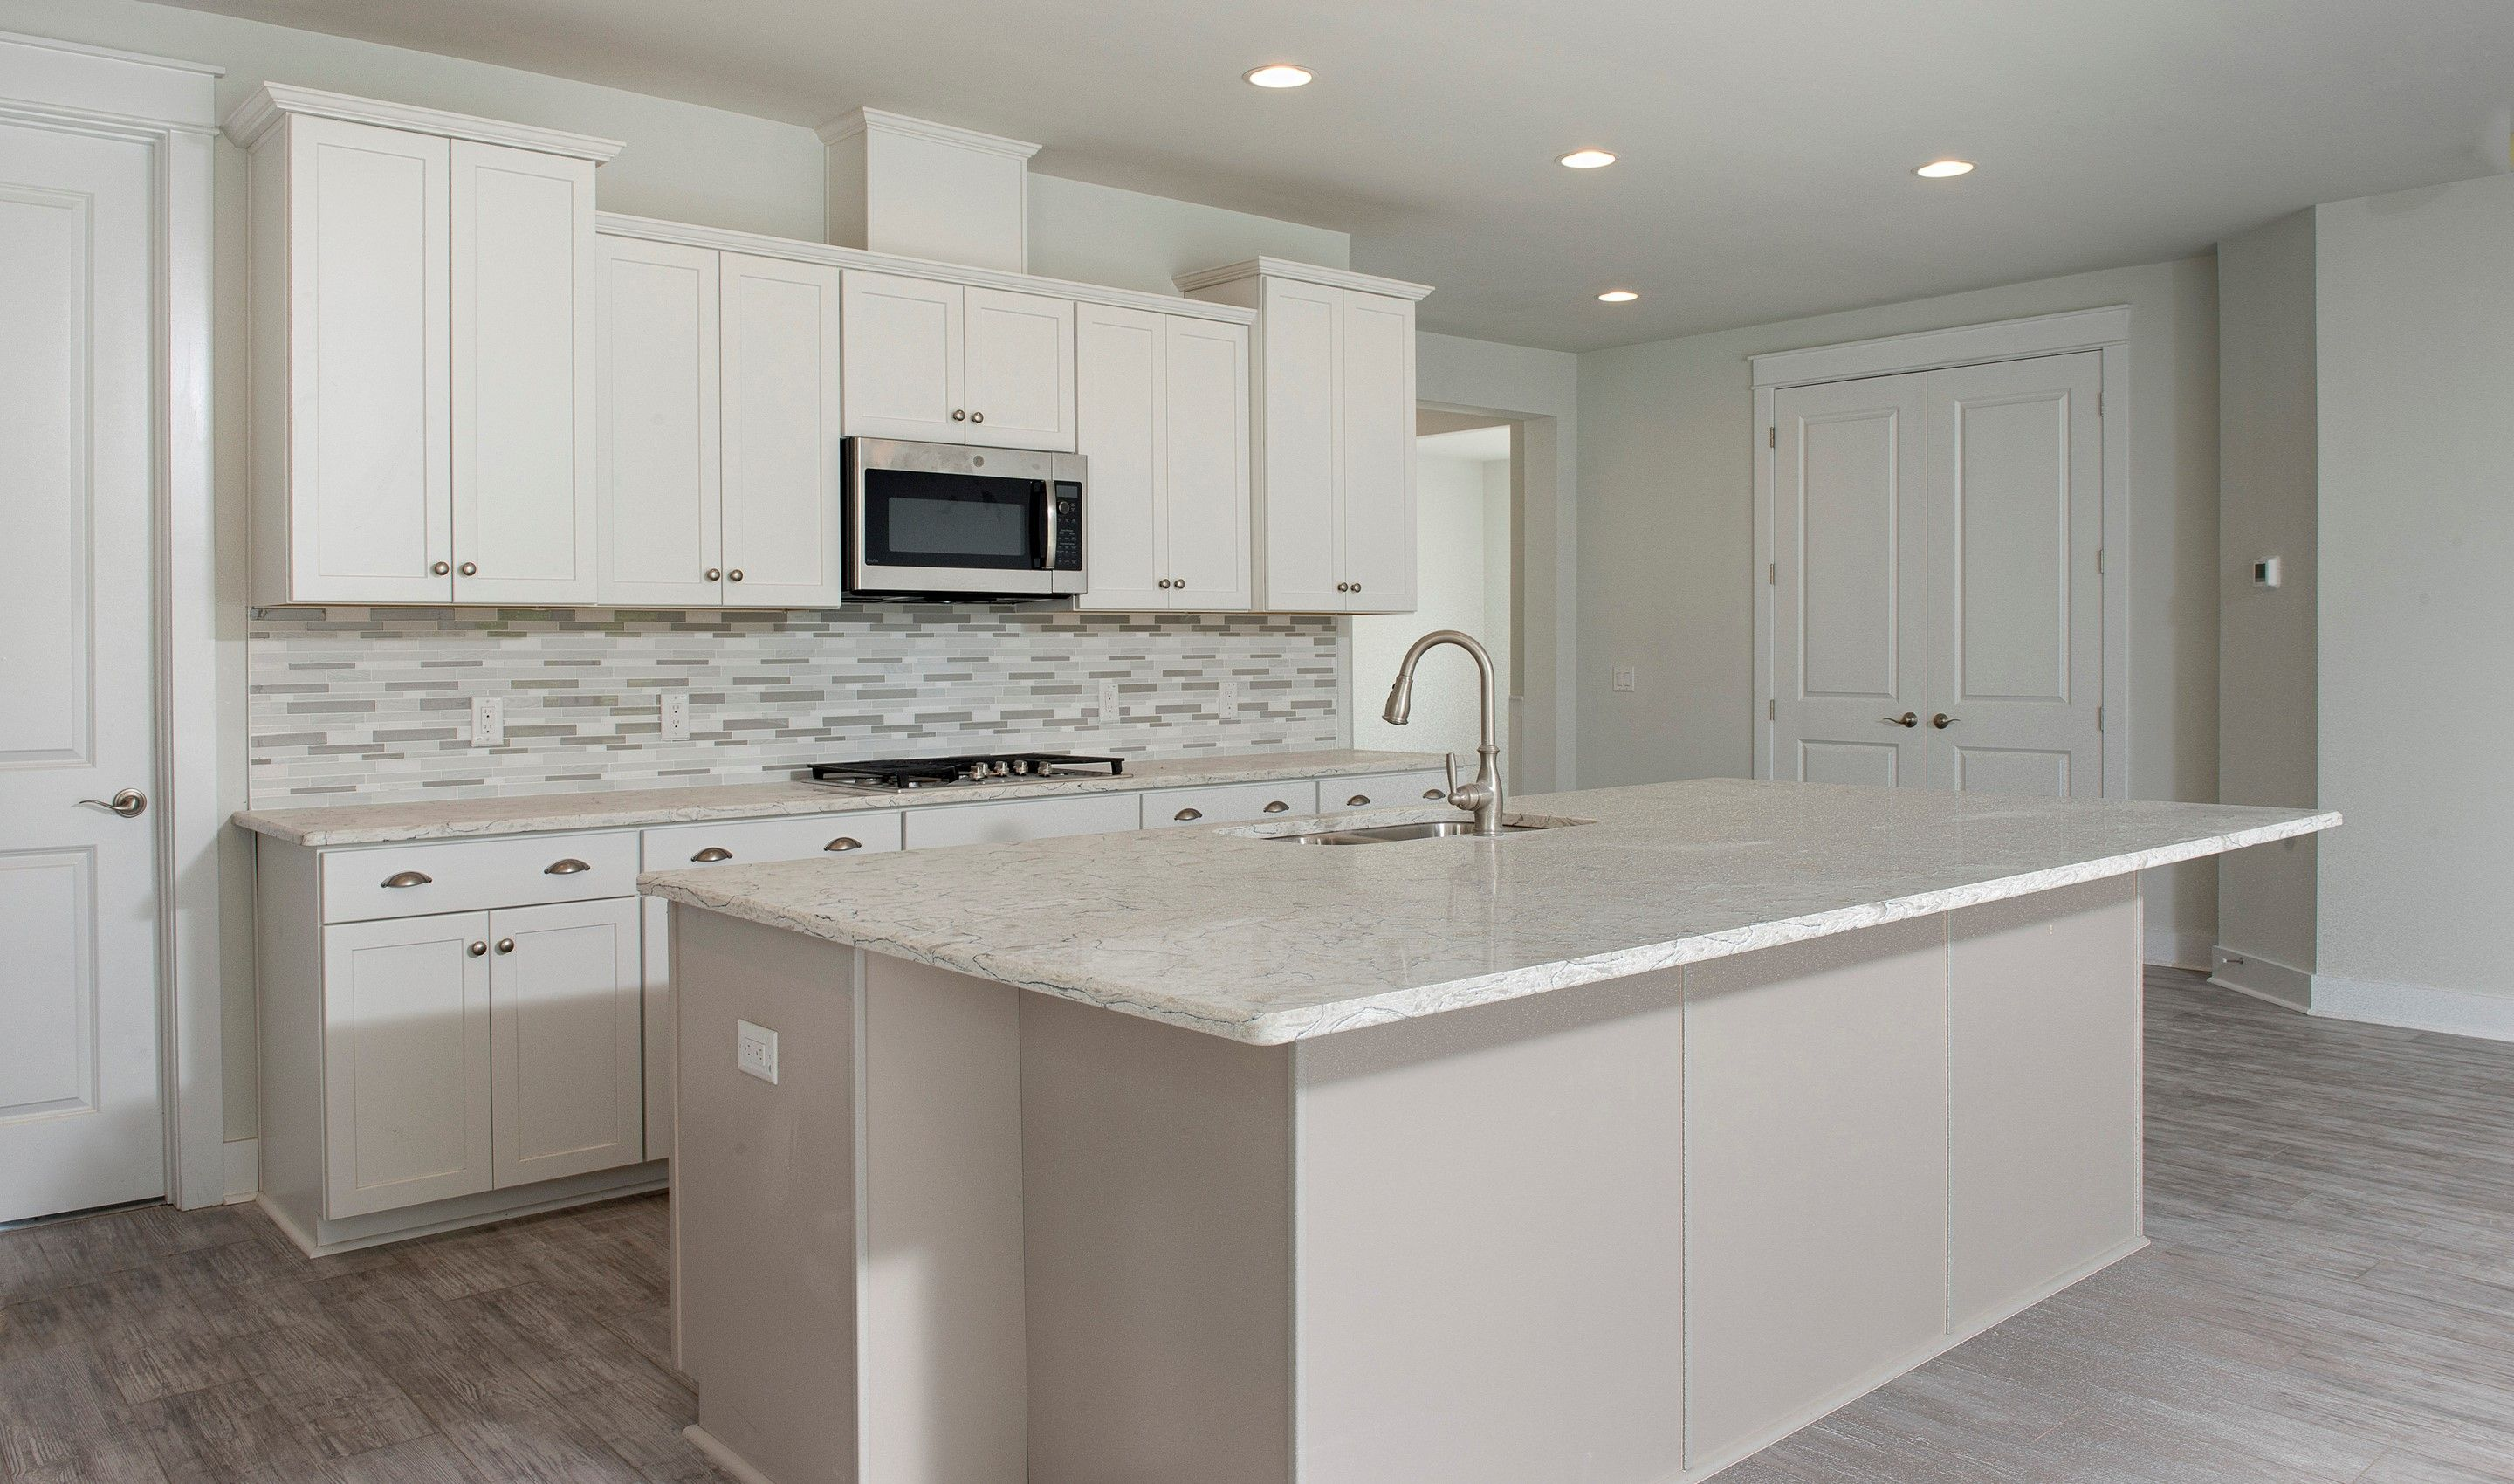 Kitchen featured in the Lille Loft By K. Hovnanian's® Four Seasons in Eastern Shore, MD